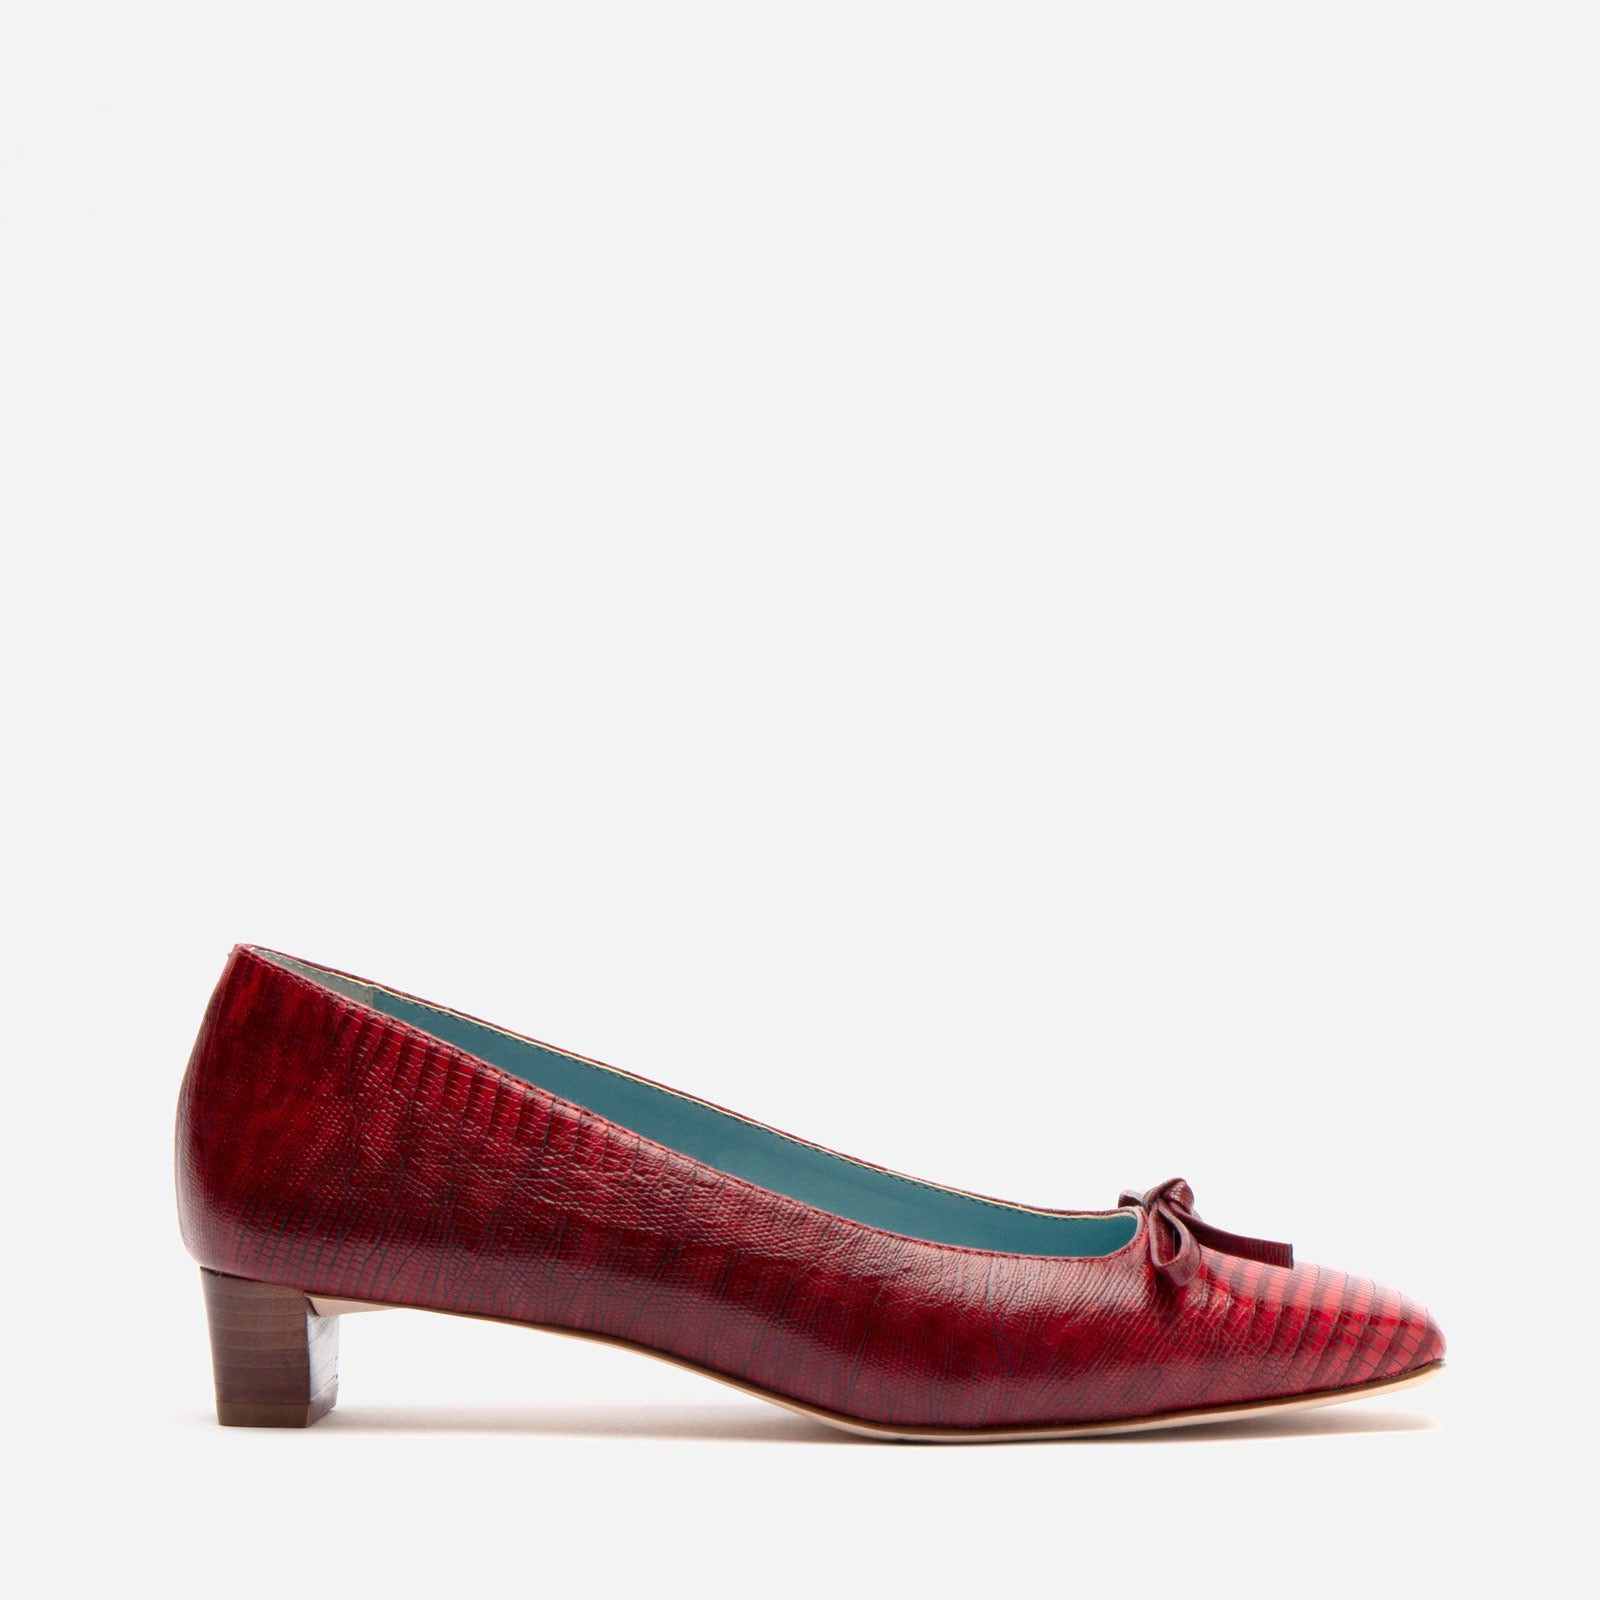 Mary Mini Block Heel Lizard Embossed Red - Frances Valentine